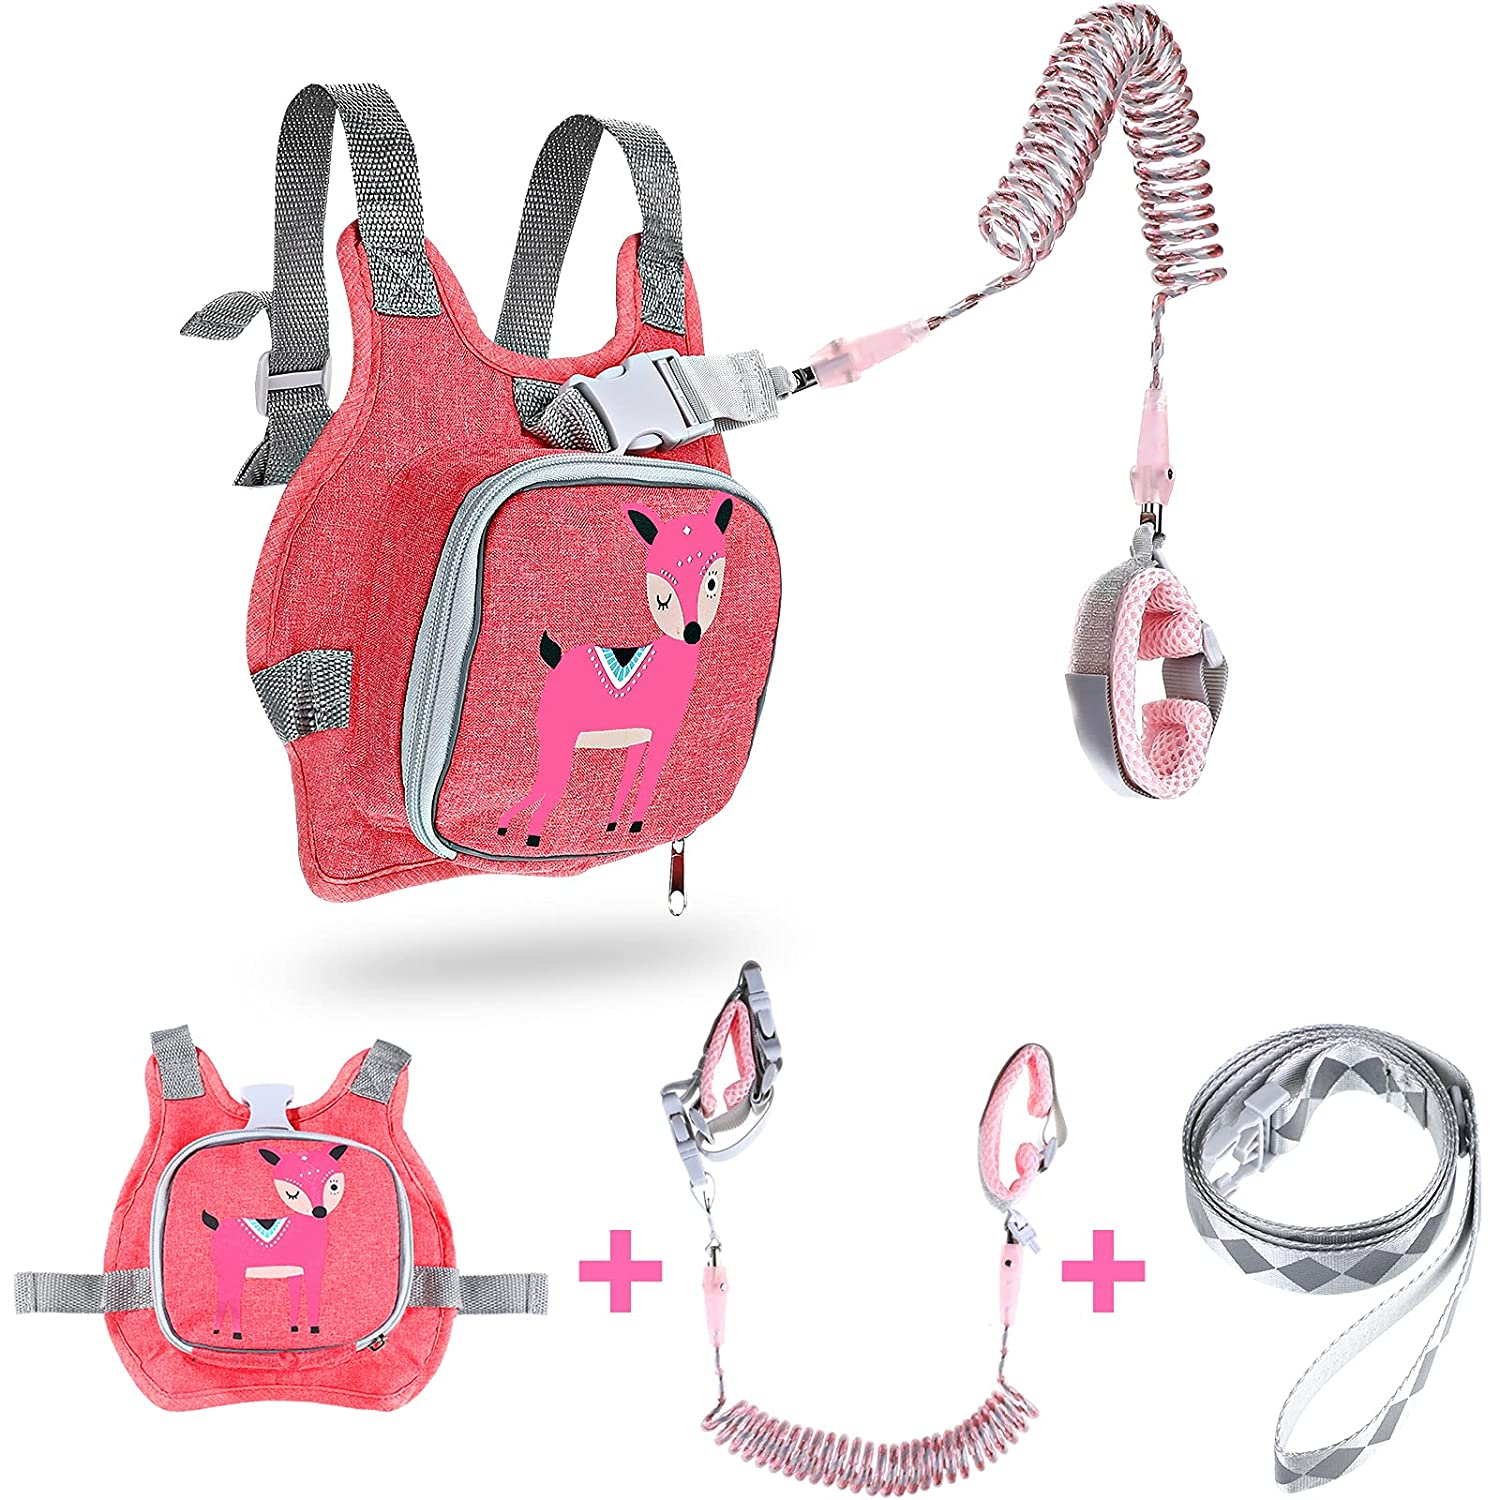 Halloween Safety Toddler Leash Backpack Child Harness Leash for Walking 3-in-1 Anti Lost Kids Wristband Safety Wrist Link for Children Toddlers Babies Kids Outdoor Activities